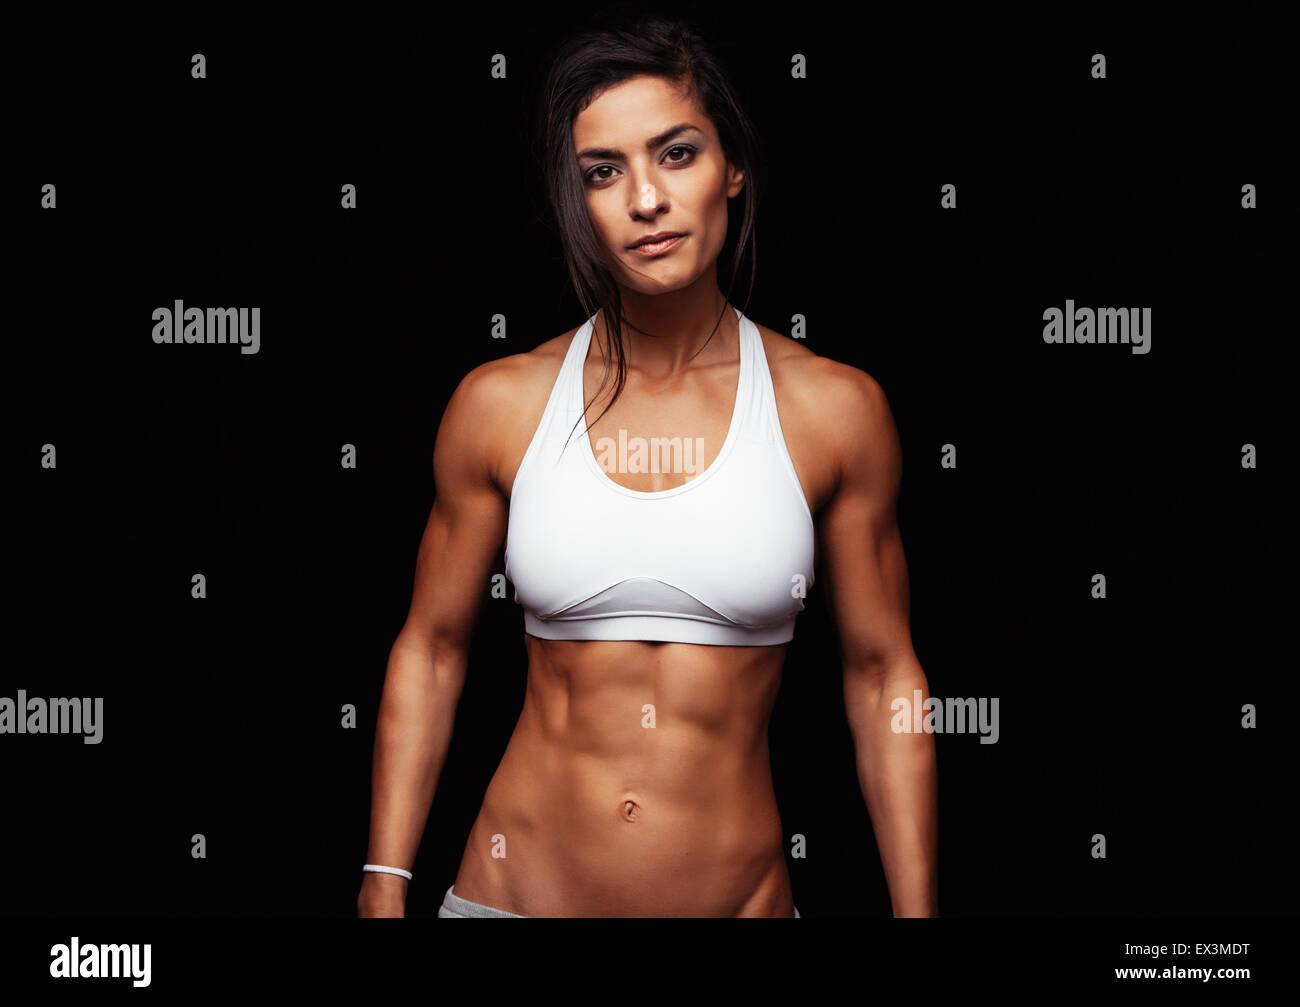 Portrait of fit young woman posing wearing sports bra against black background. Determined sportswoman in studio. - Stock Image